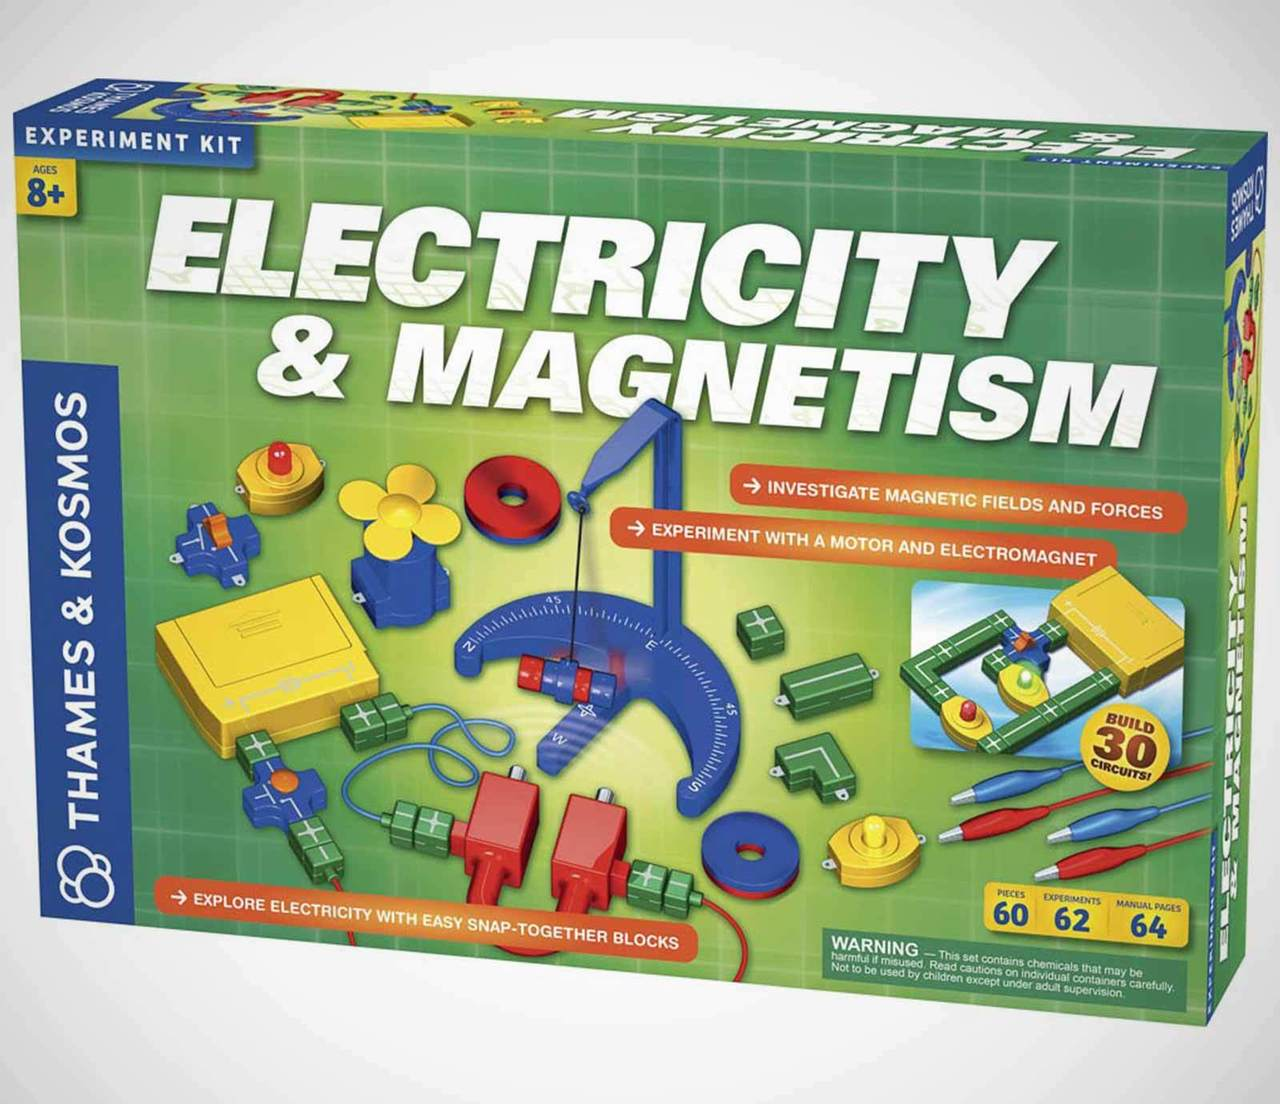 Admirable Electricity Electronics For Kids Supplies Kits From Hst Wiring Cloud Licukosporaidewilluminateatxorg